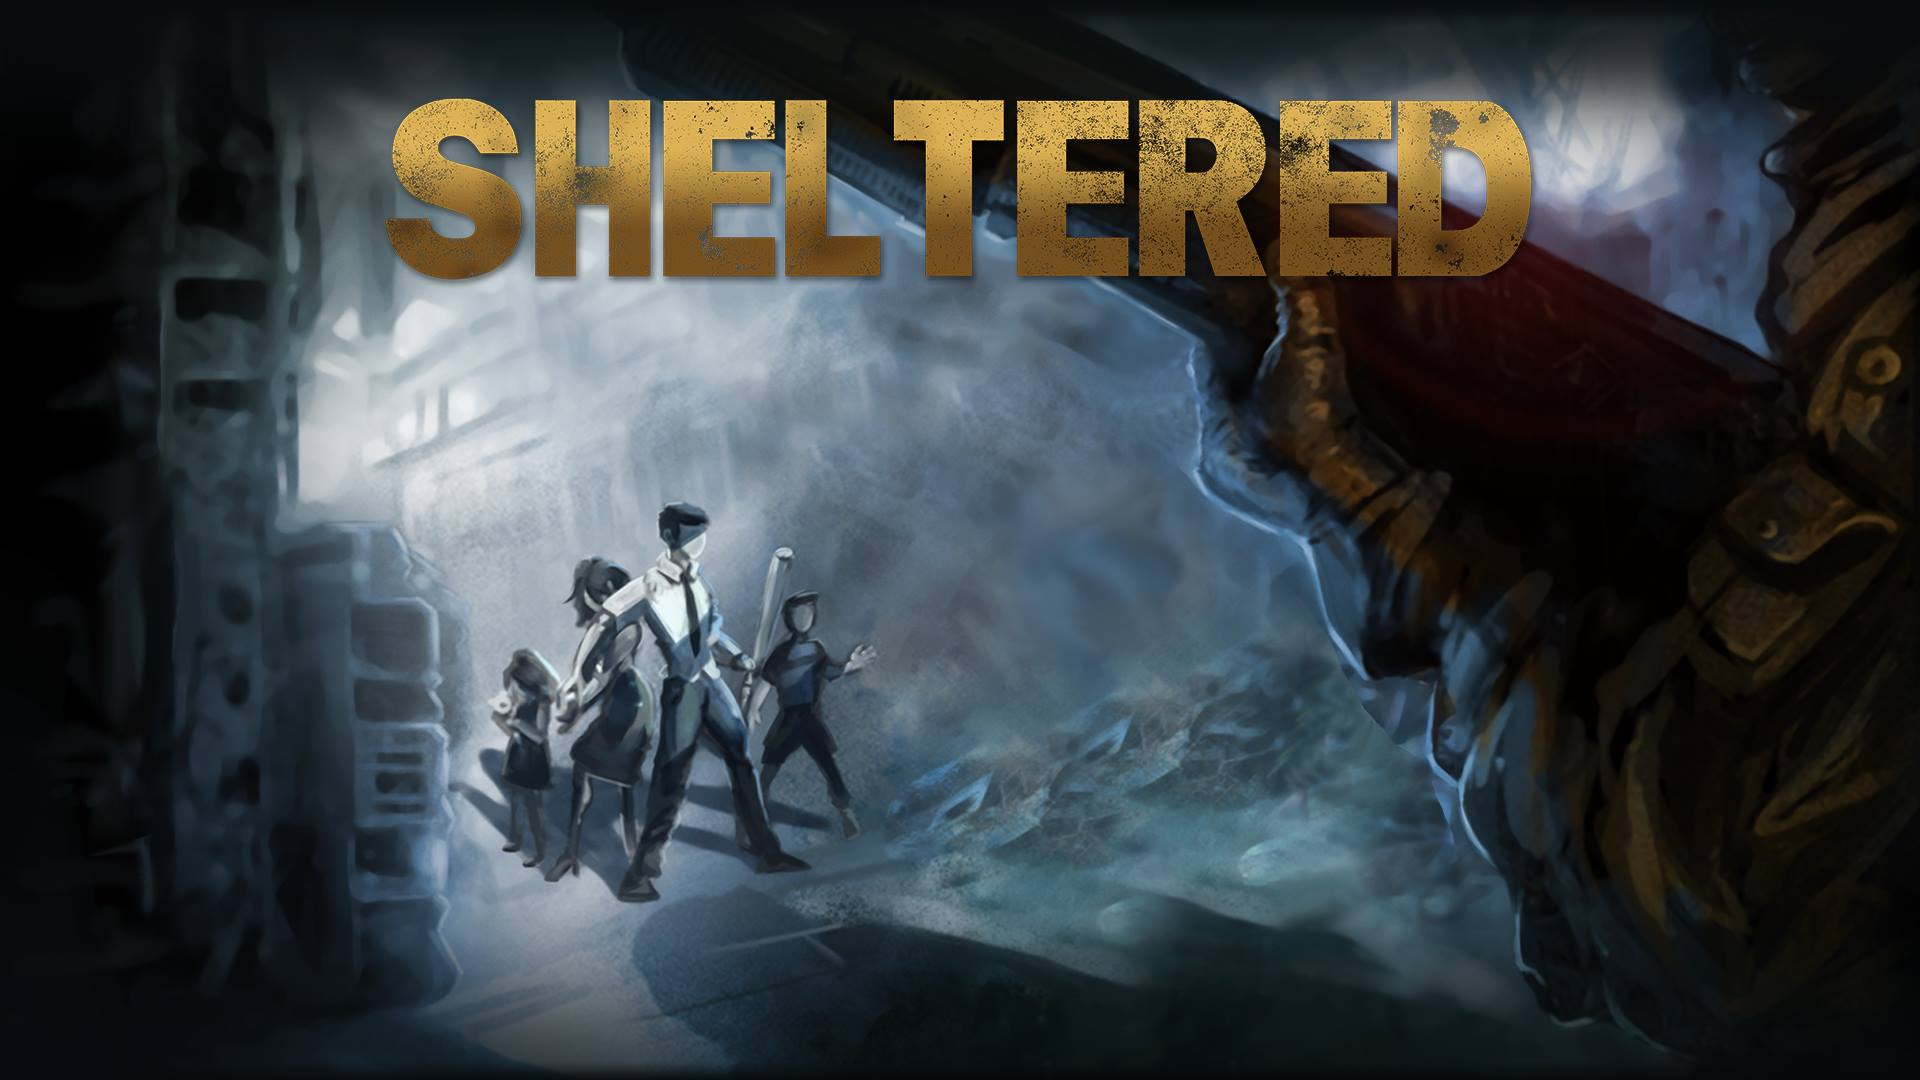 Ps4 Games Coming Soon : Xbox and pc hit 'sheltered coming soon to ps horror